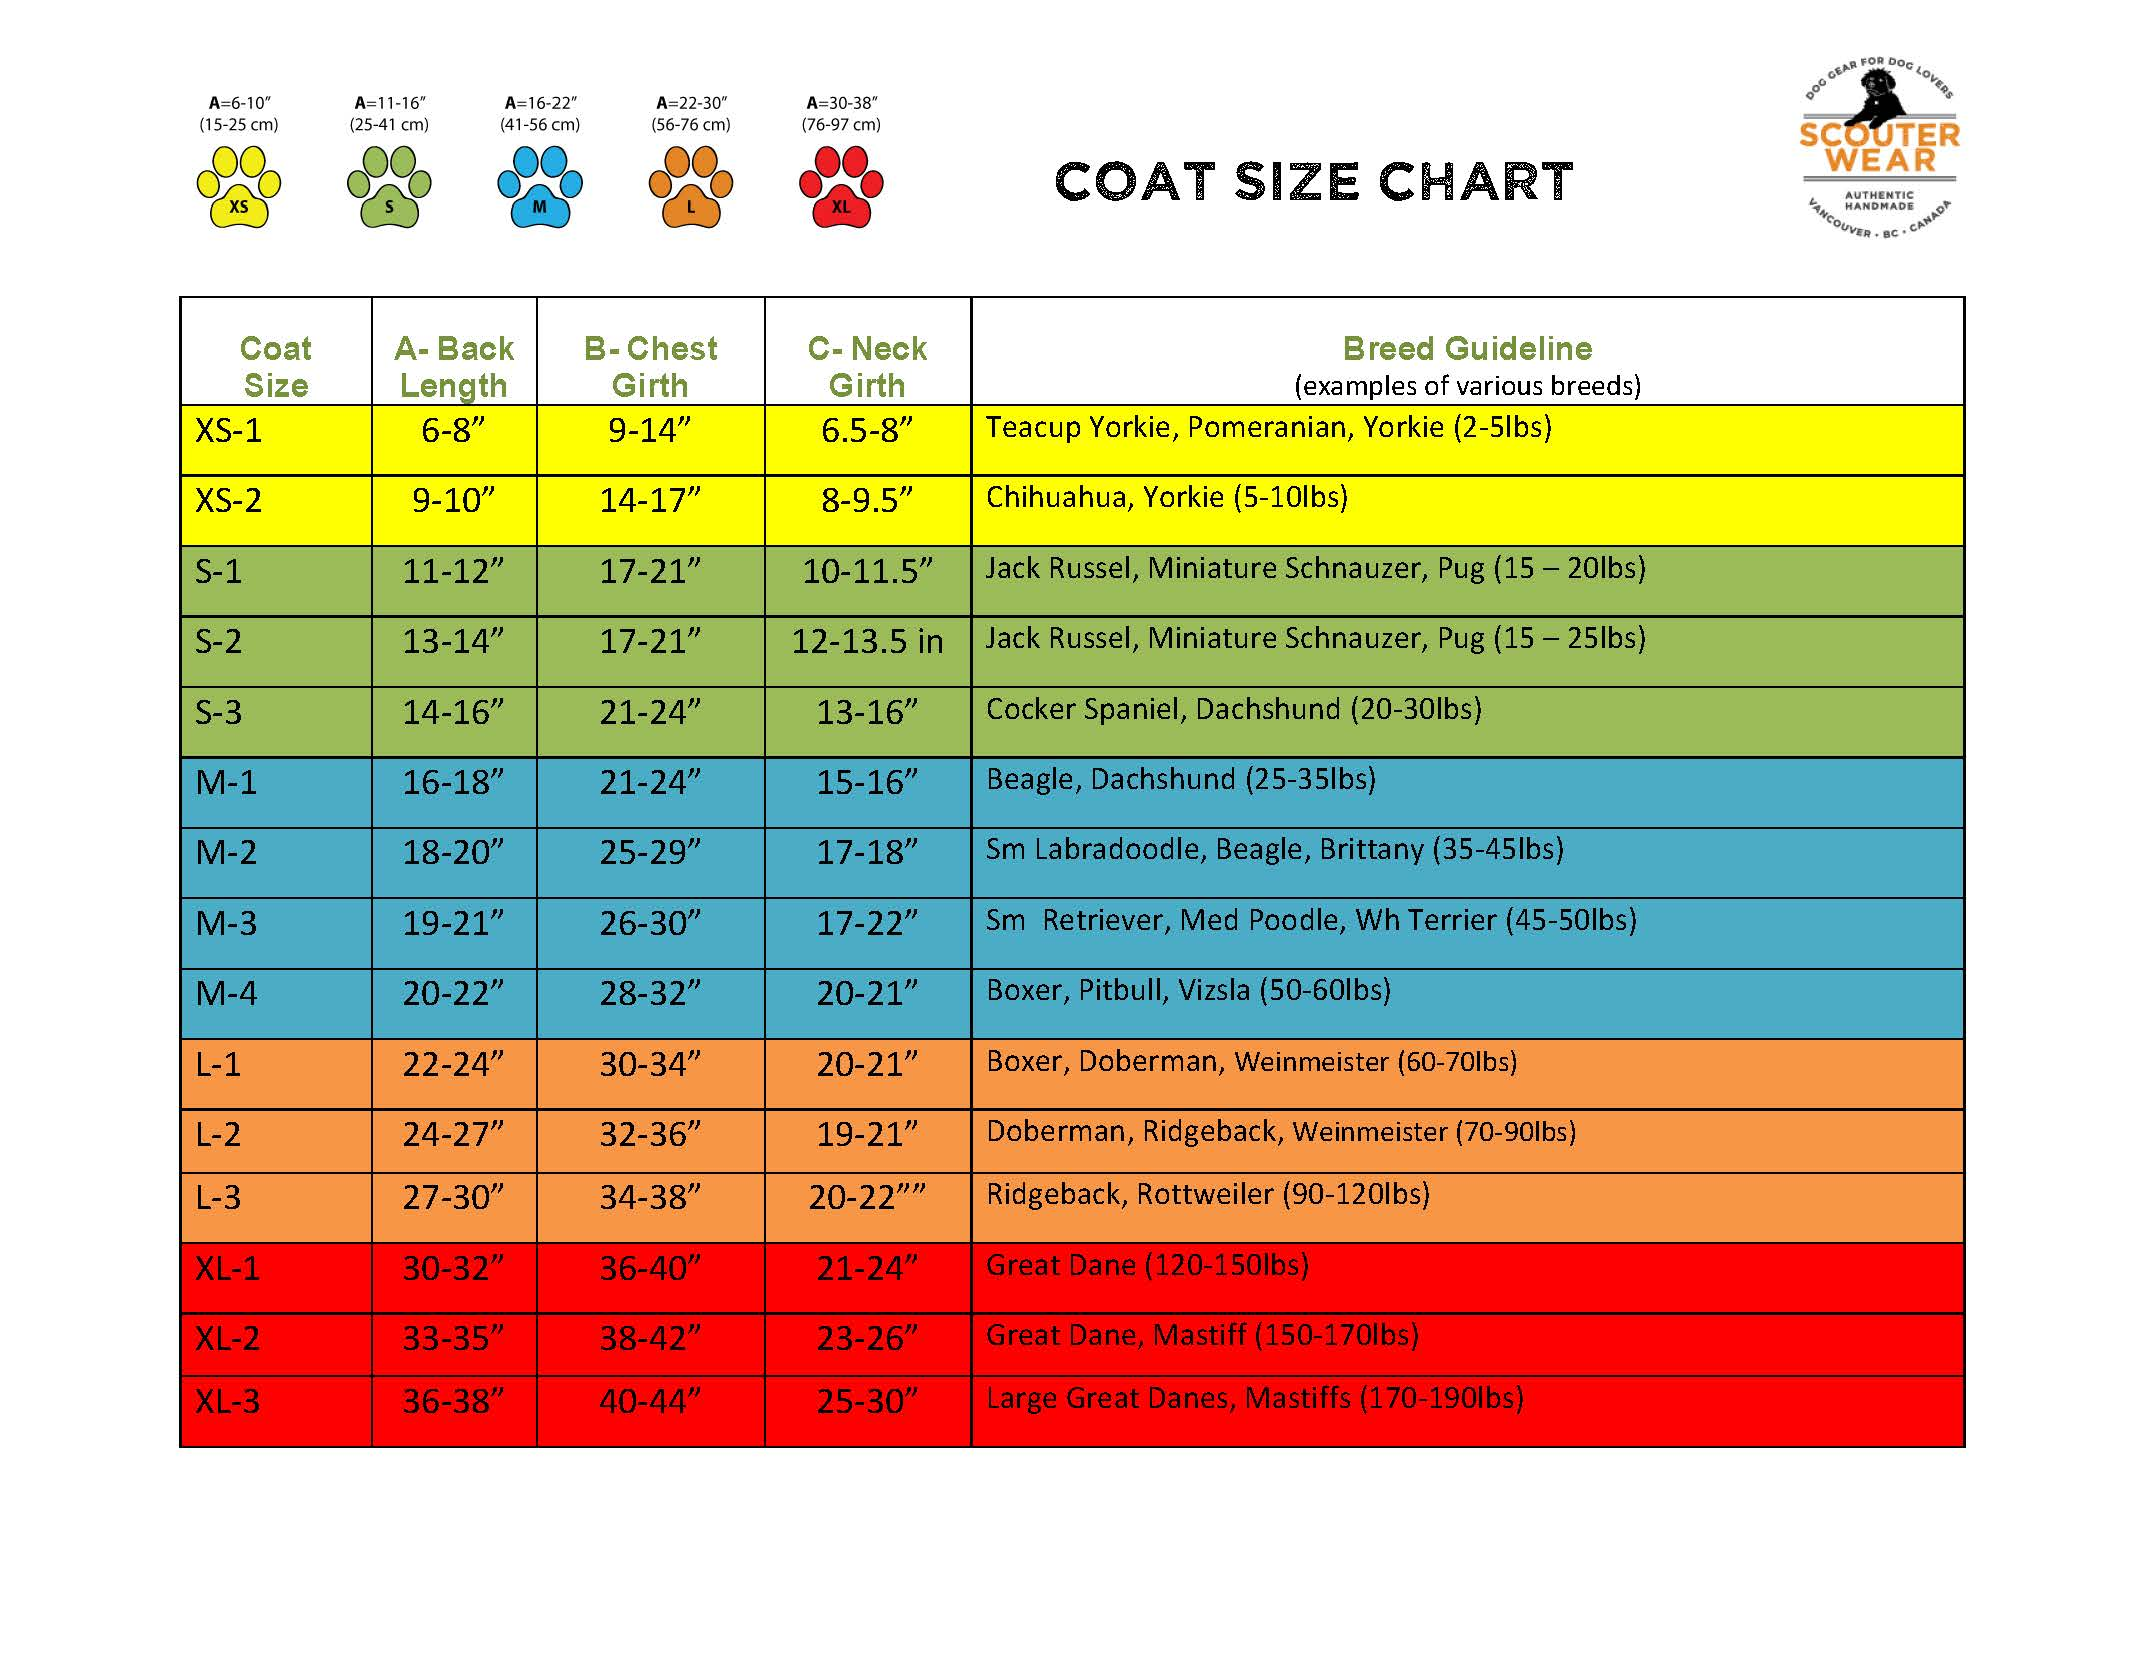 Scouter Wear coat sizing chart